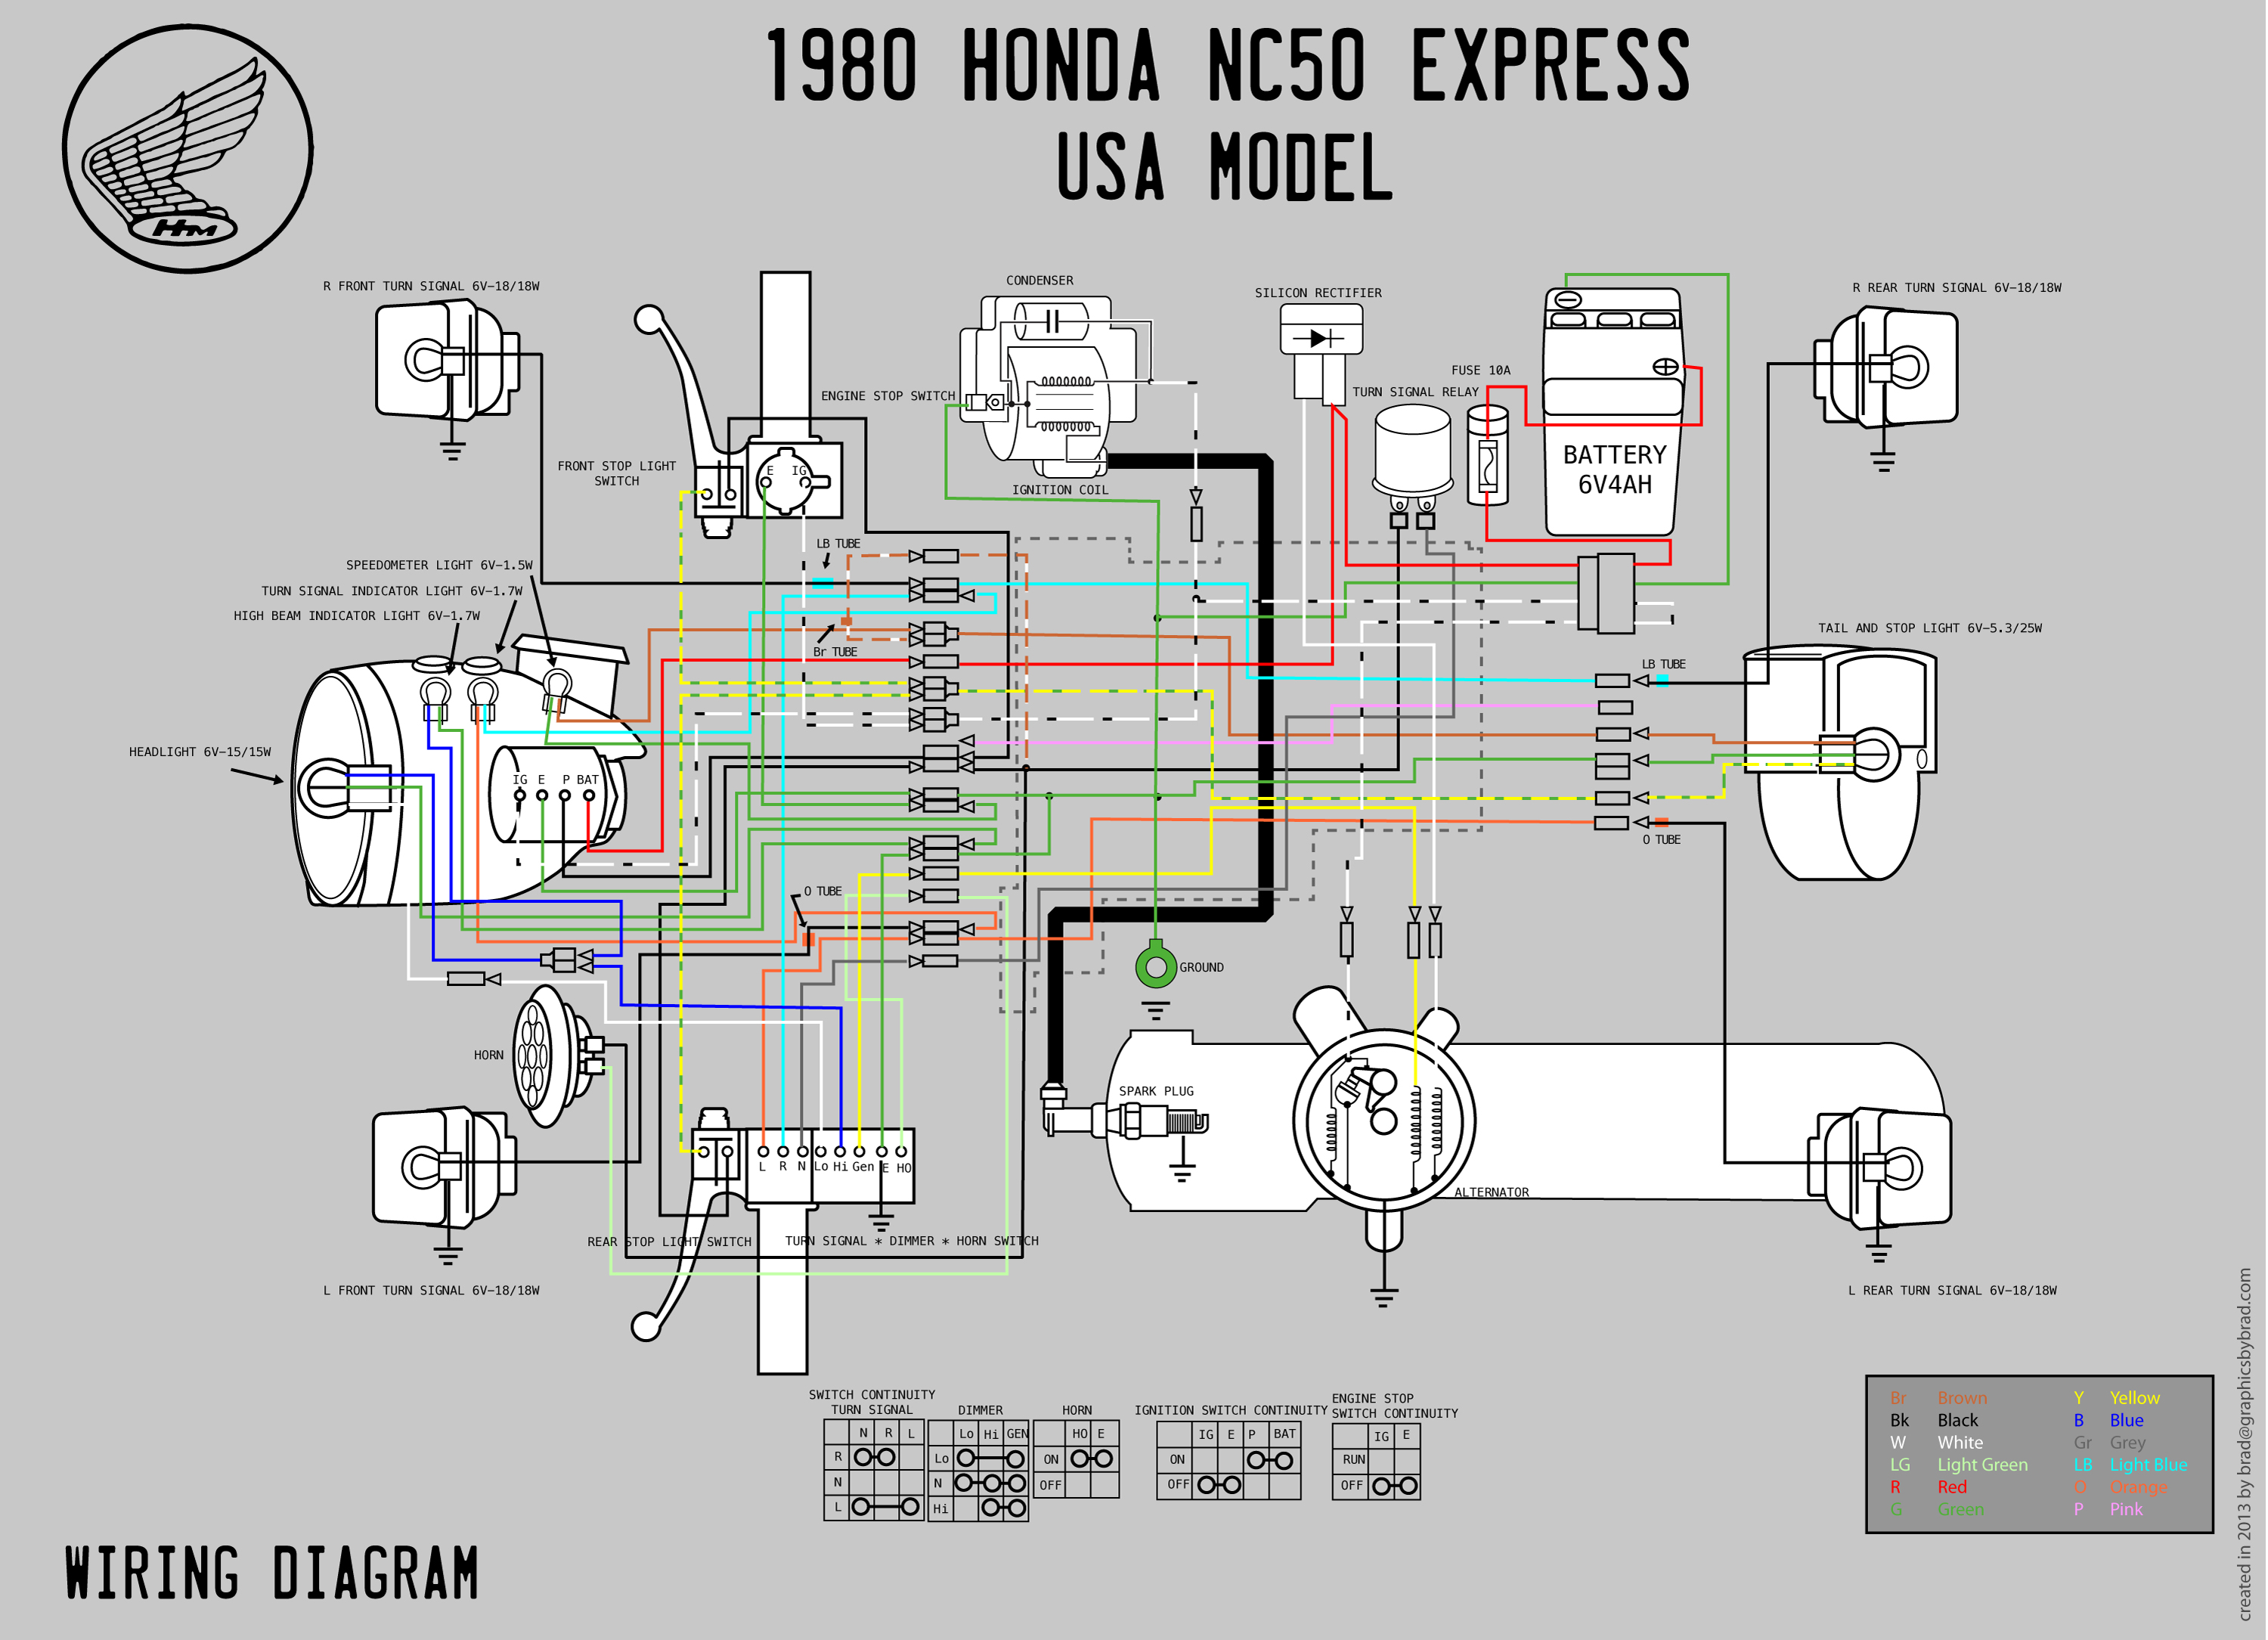 1980 honda nc50 wiring diagram moped wiki rh mopedarmy com 150Cc Scooter Wiring Diagram Puch Moped Wiring-Diagram